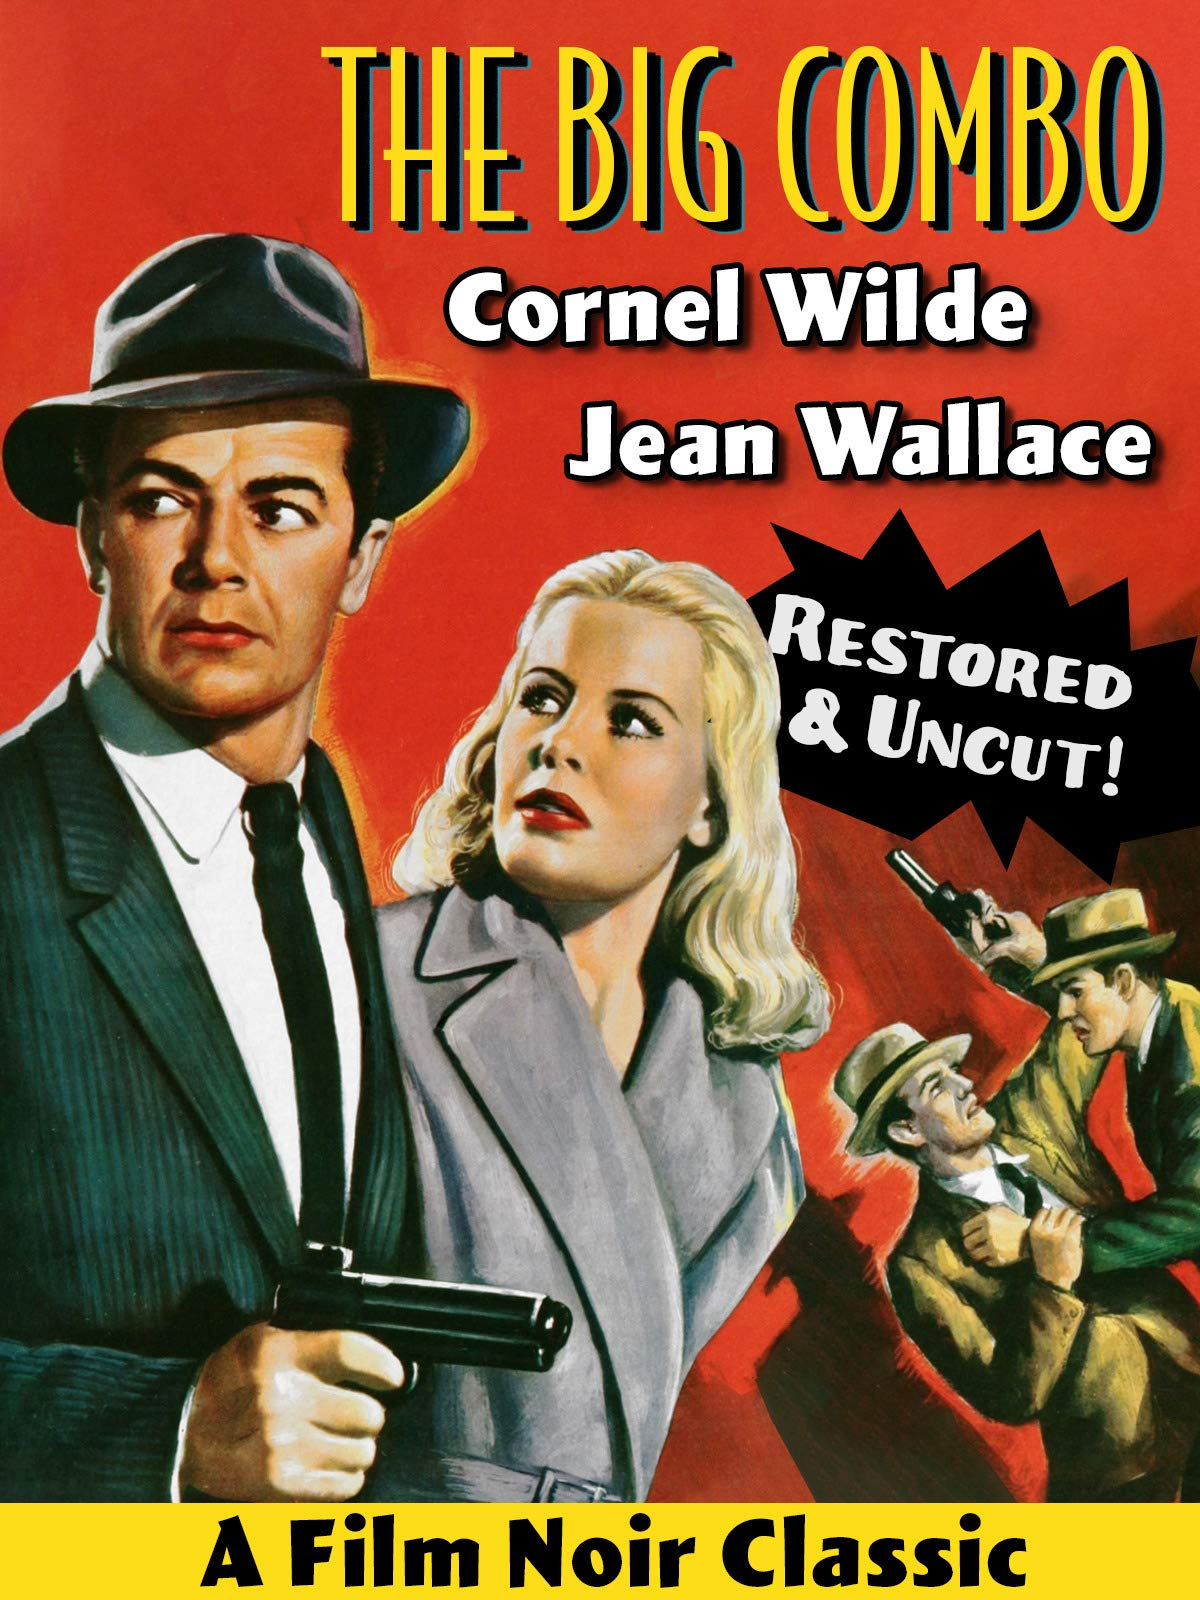 The Big Combo - Cornel Wilde, Richard Conte, A Film Noir Classic, Restored & Uncut!